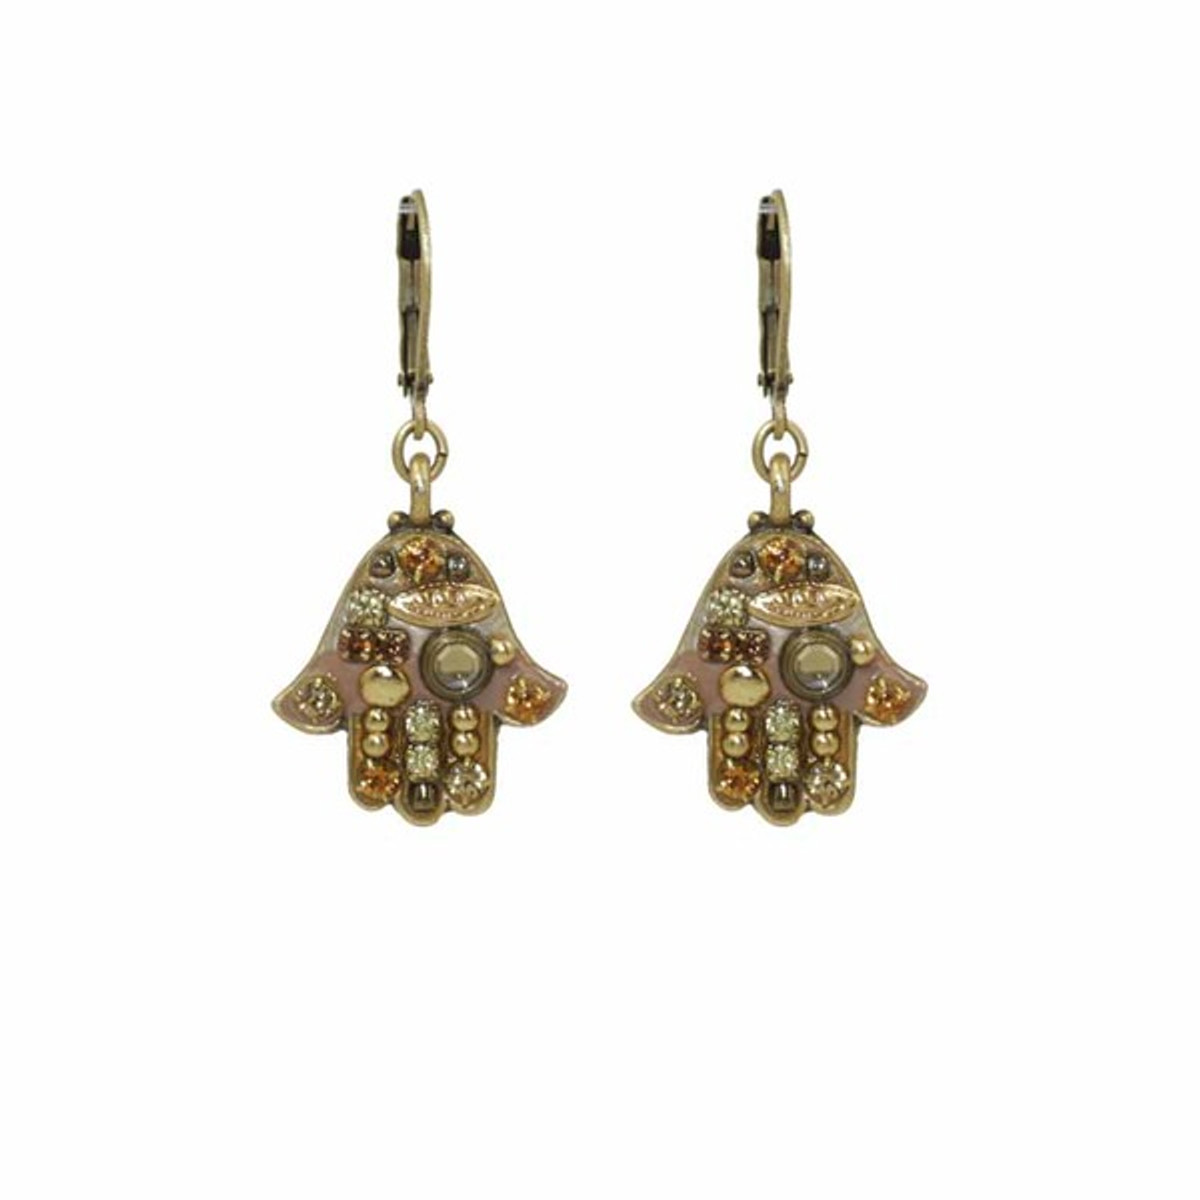 Michal Golan Jewelry Hamsa Earrings